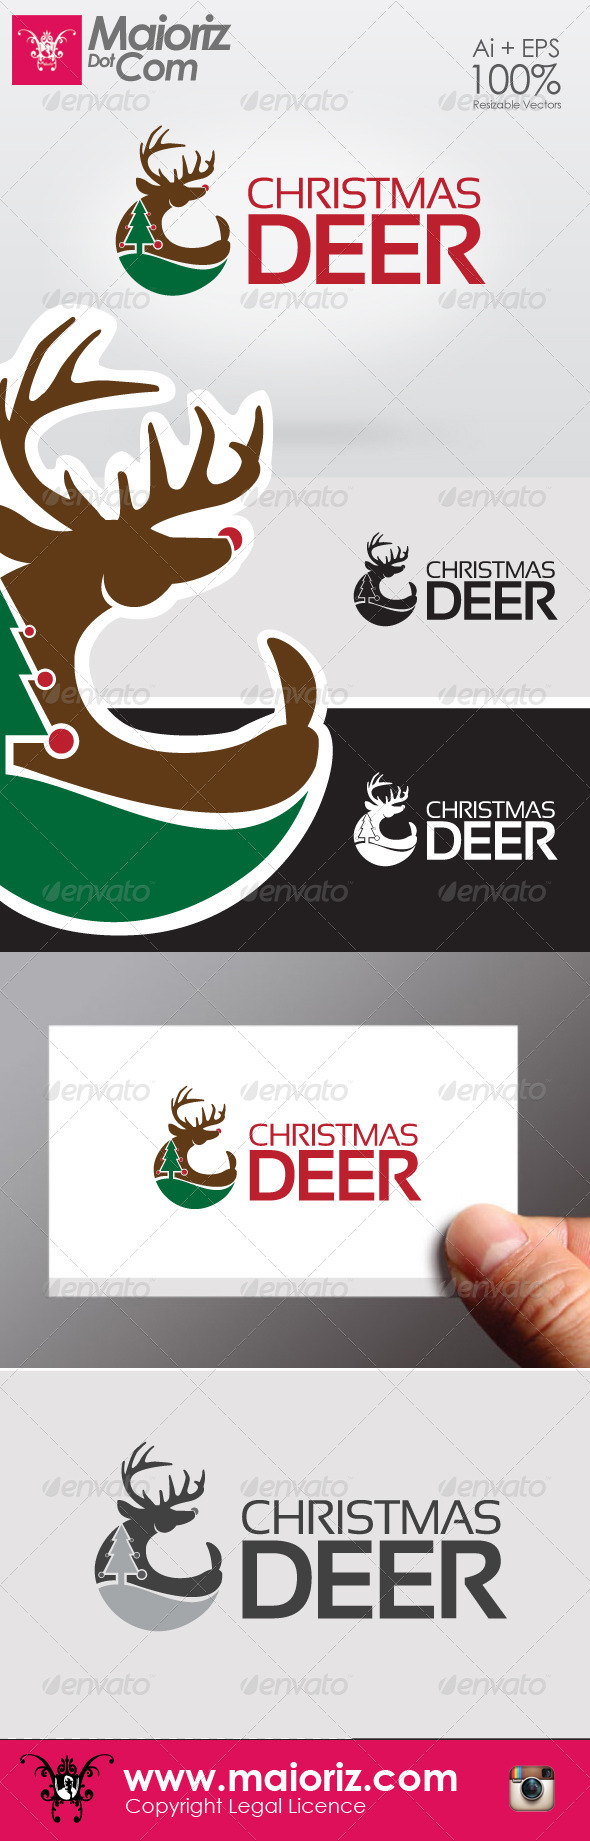 GraphicRiver Christmas Deer Logo 6415895